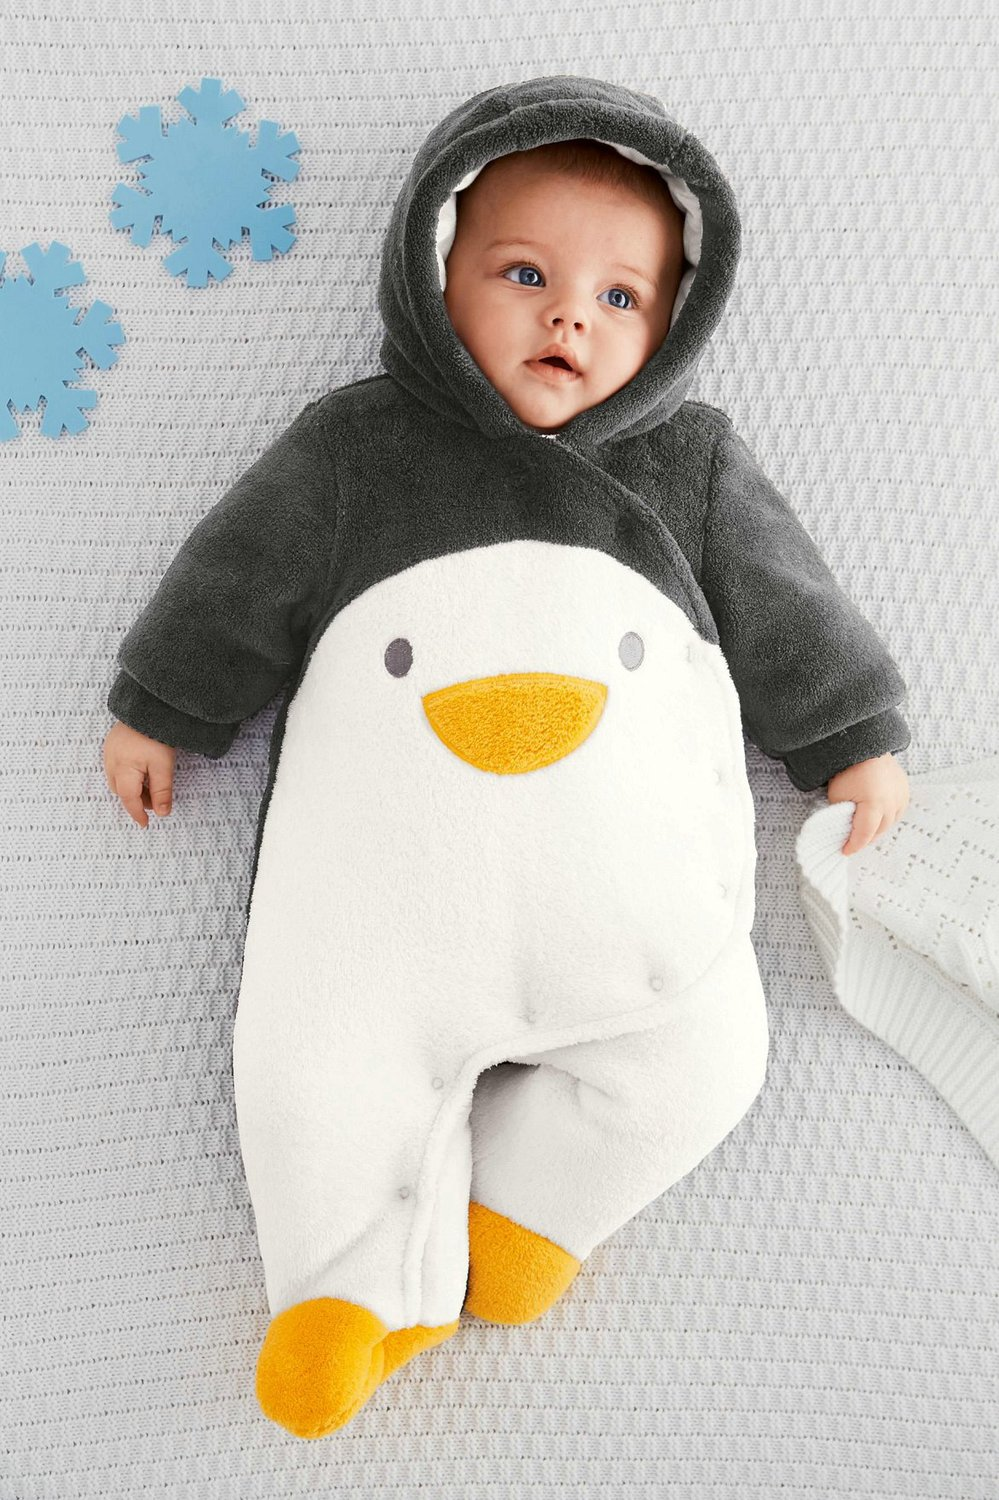 New 2016 autumn winter rompers for newborns baby boy clothes children cartoon penguin thick cotton jumpsuits infant overalls 5pcs lot baby bodysuits original infant jumpsuits autumn overalls cotton coveralls boy girls baby clothing set cartoon outerwear